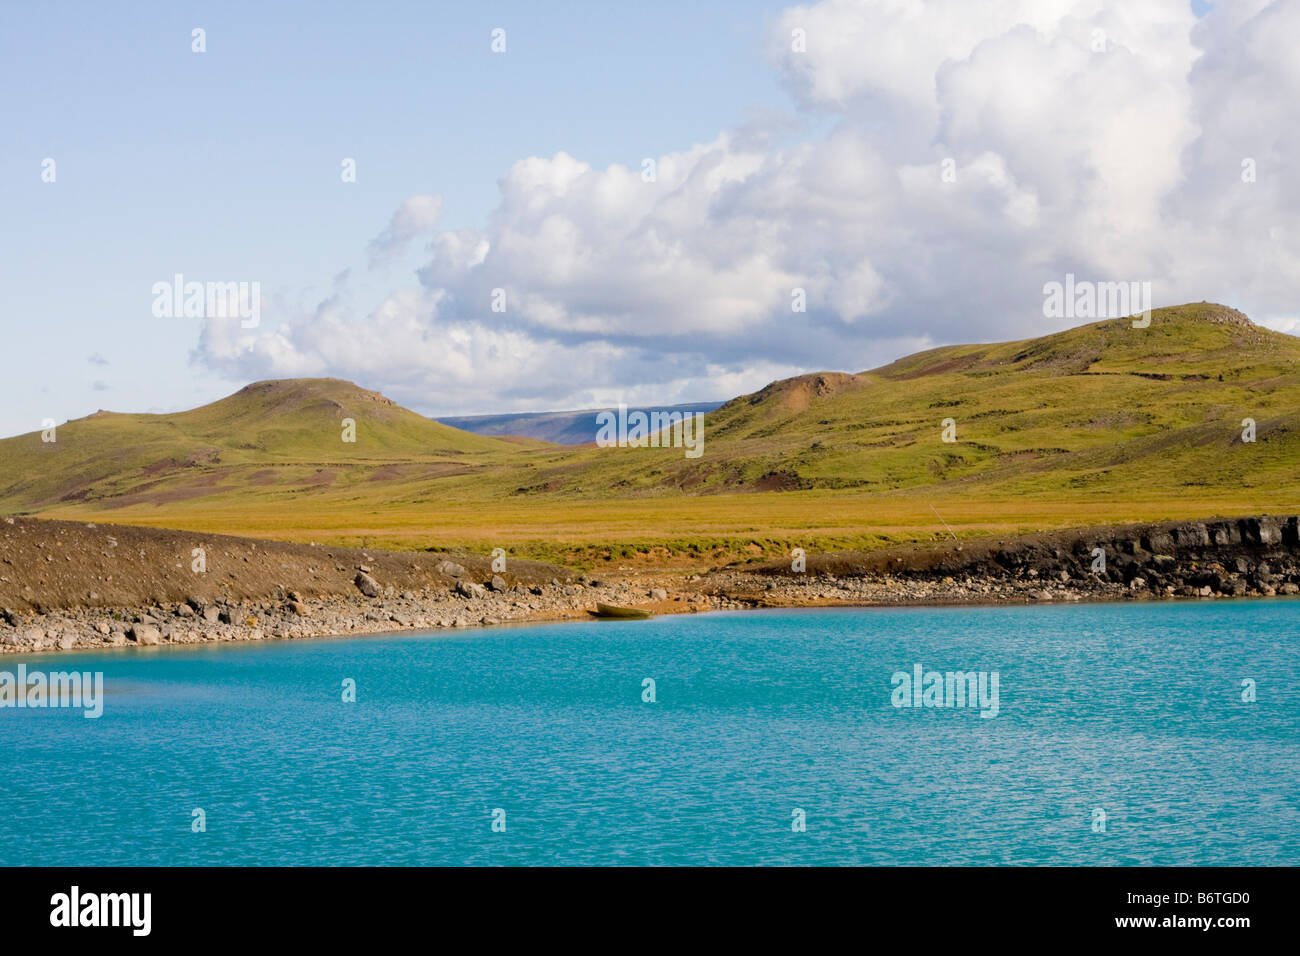 Greanavatn volcanic crater lake Iceland - Stock Image